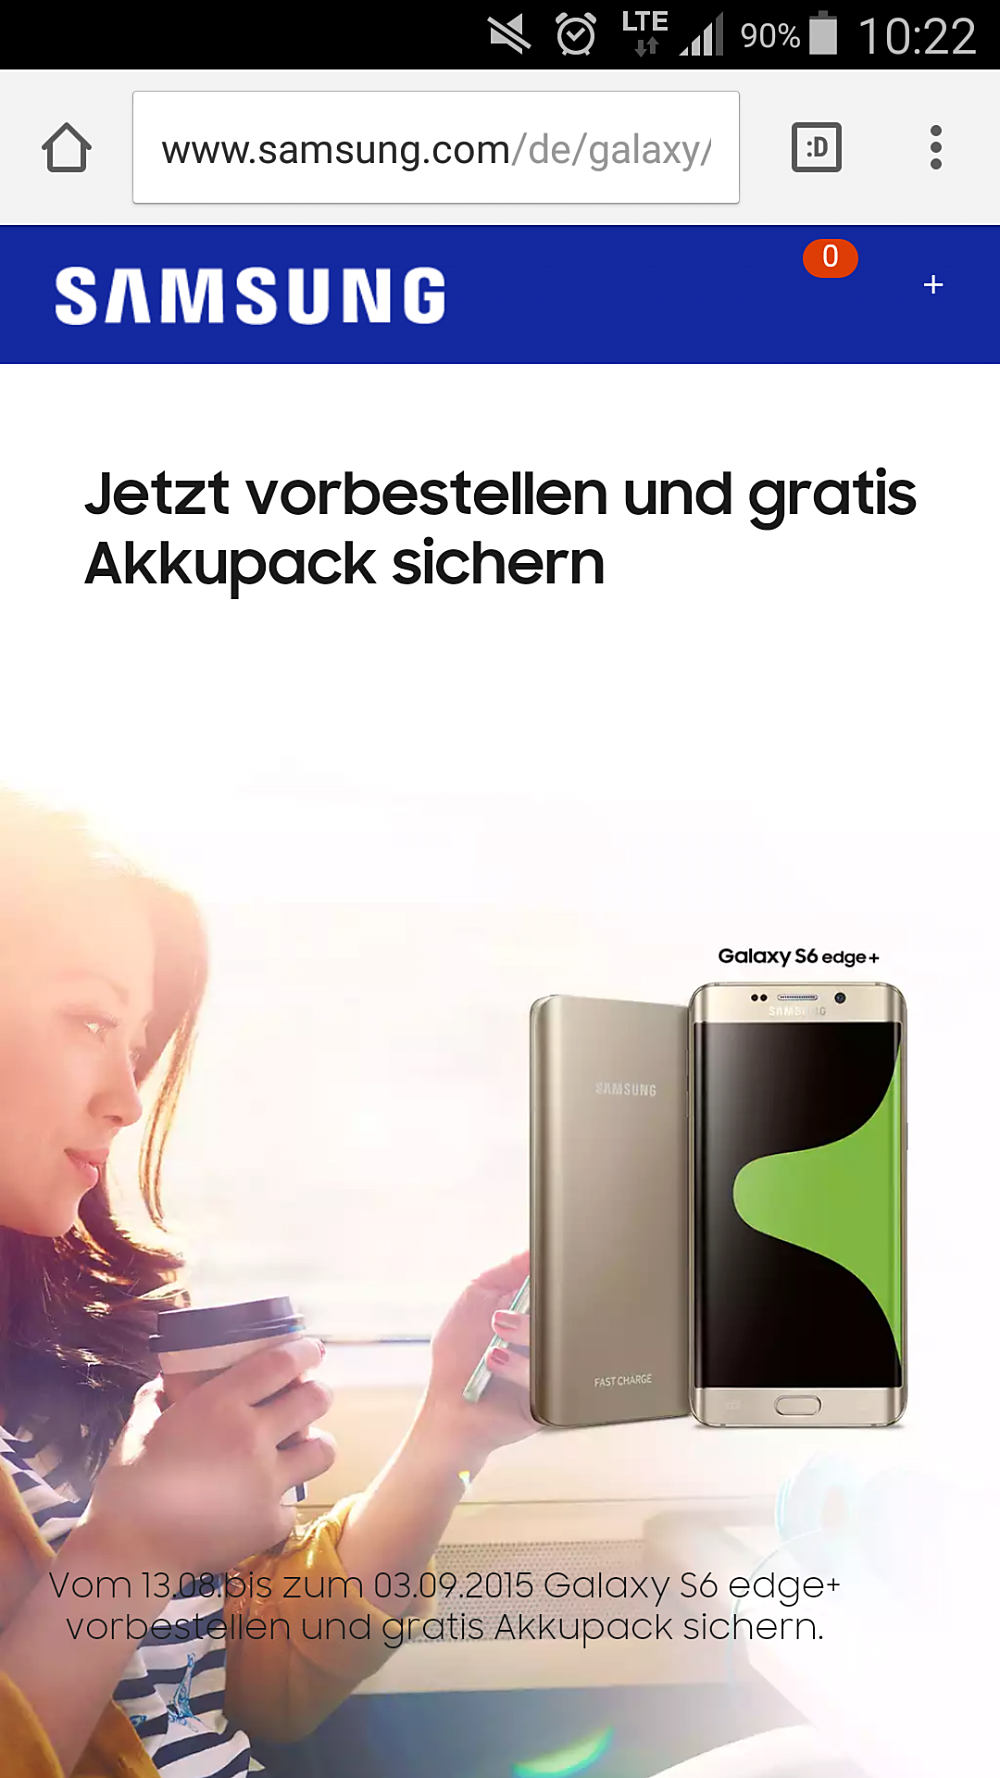 samsung push service bringt werbung ins. Black Bedroom Furniture Sets. Home Design Ideas